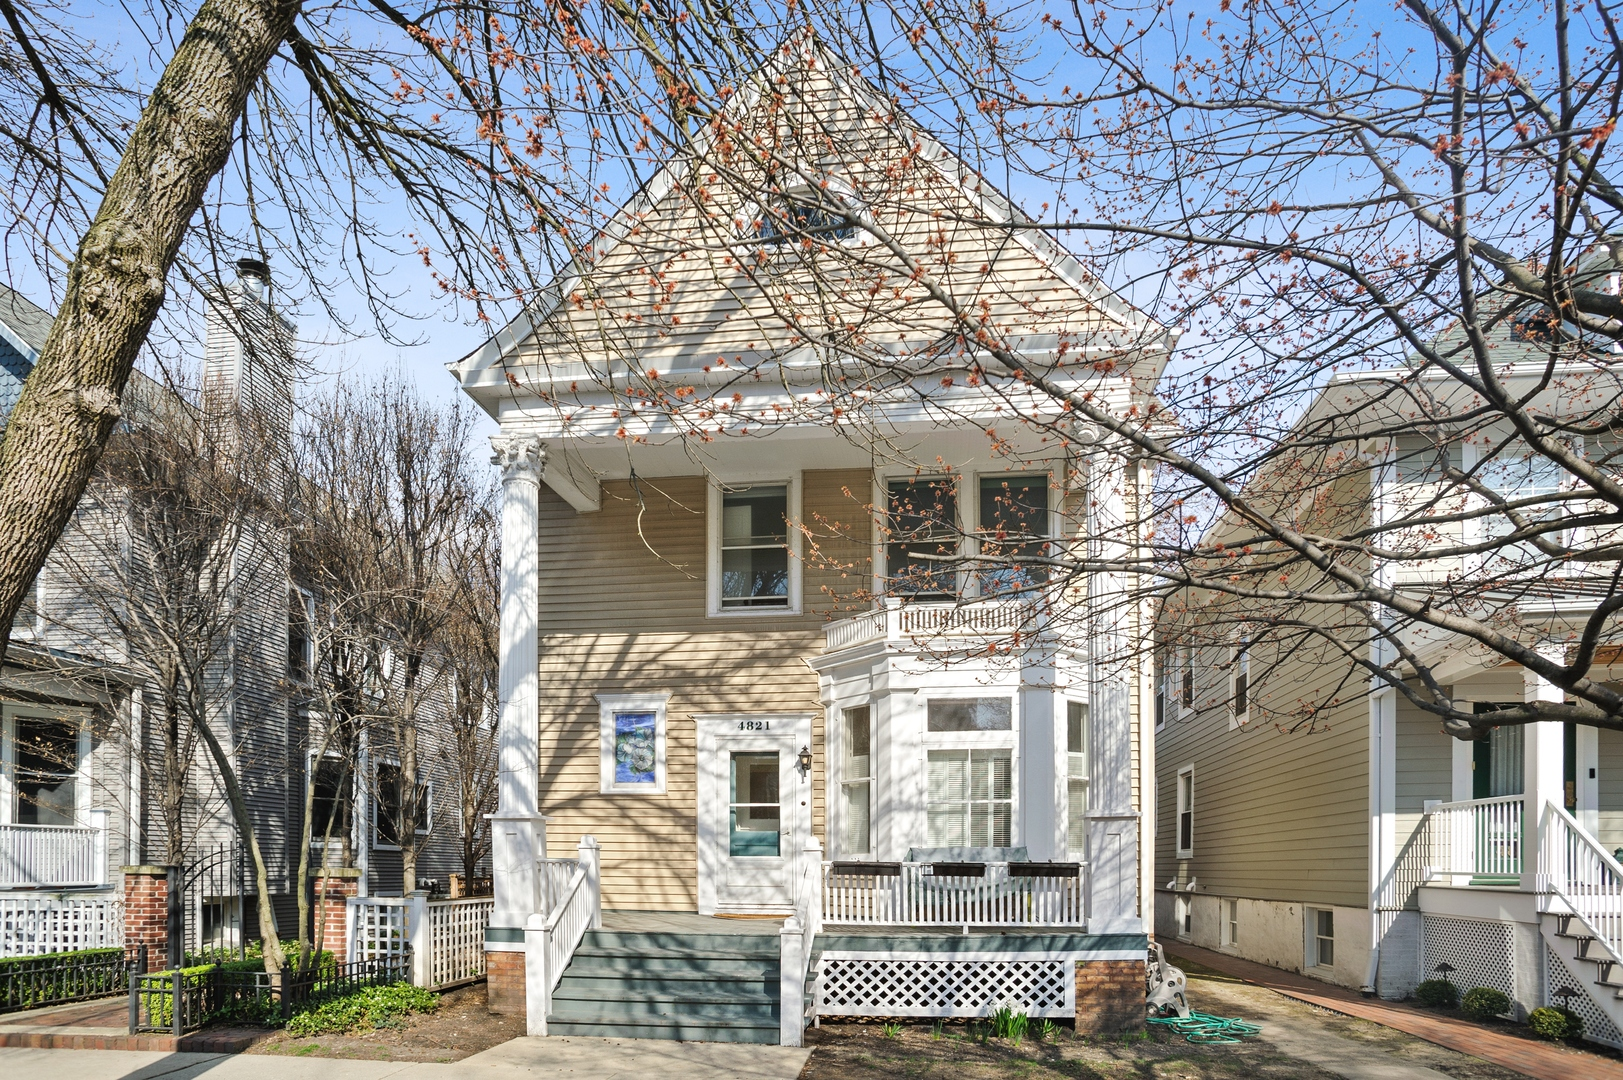 One of Lincoln Square 3 Bedroom Homes for Sale at 4821 North Hamilton Avenue